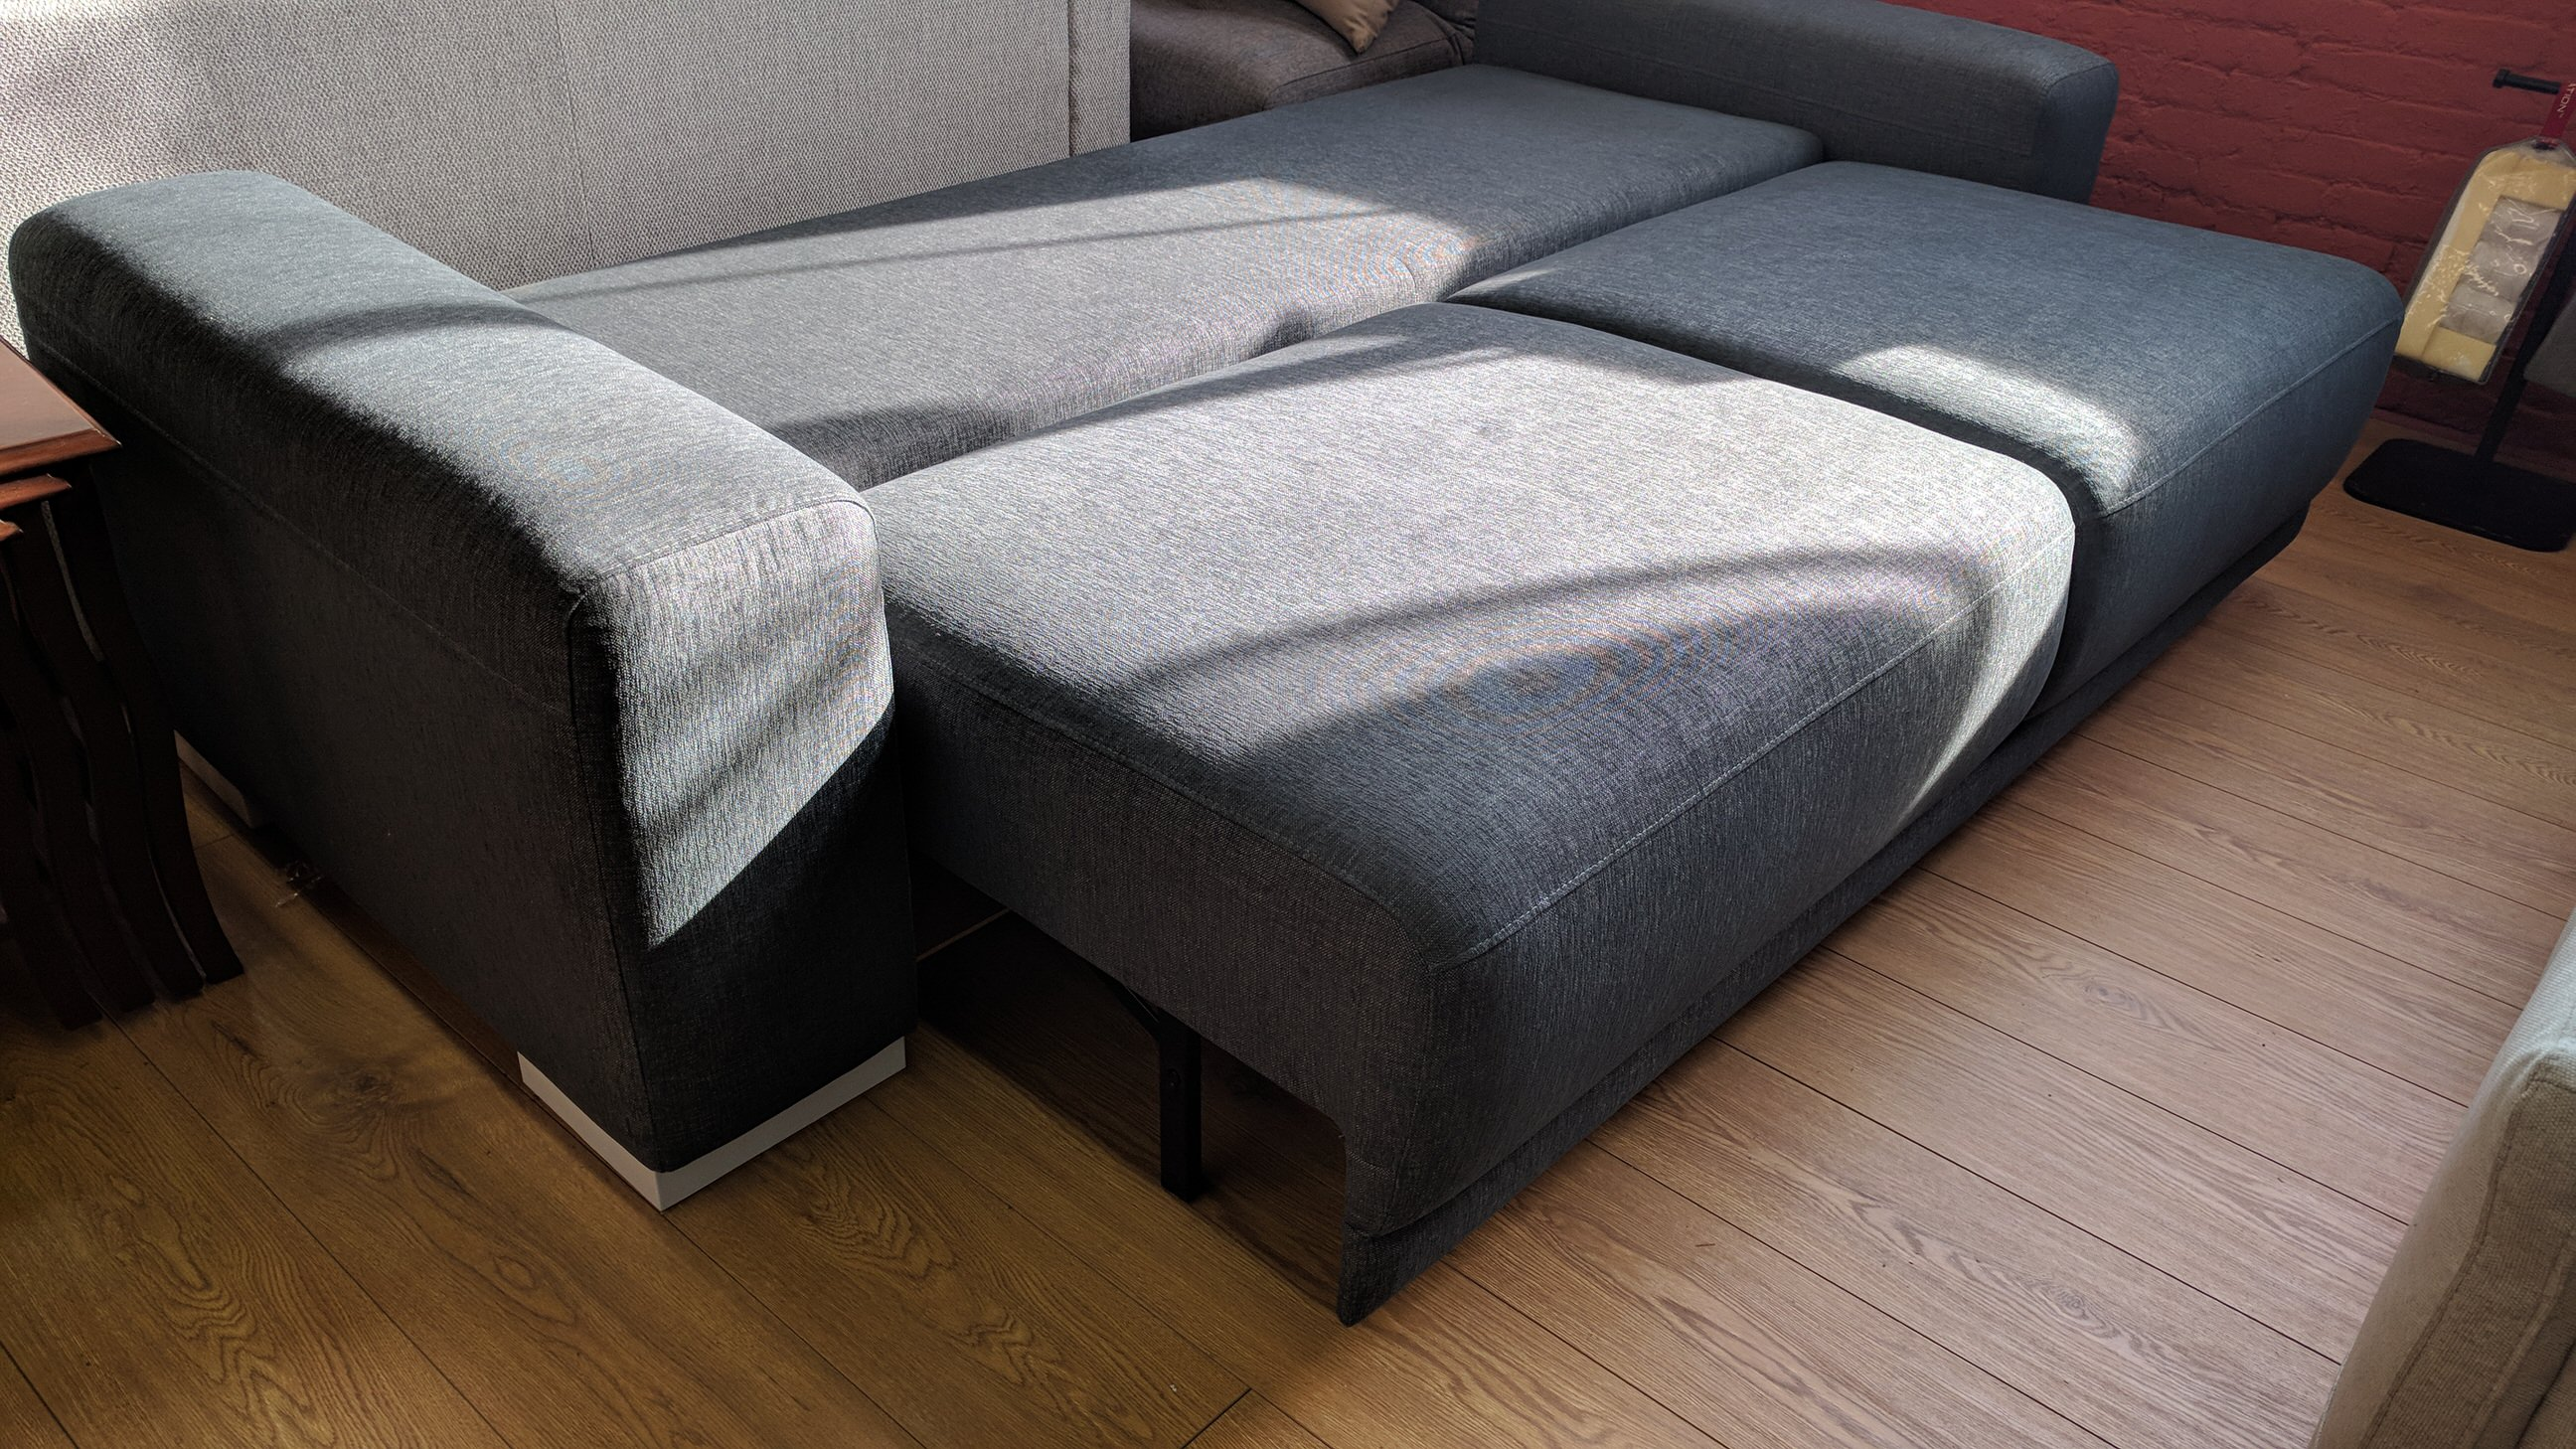 Copenhagen Sofa Sleeper Bed By Luonto Furniture